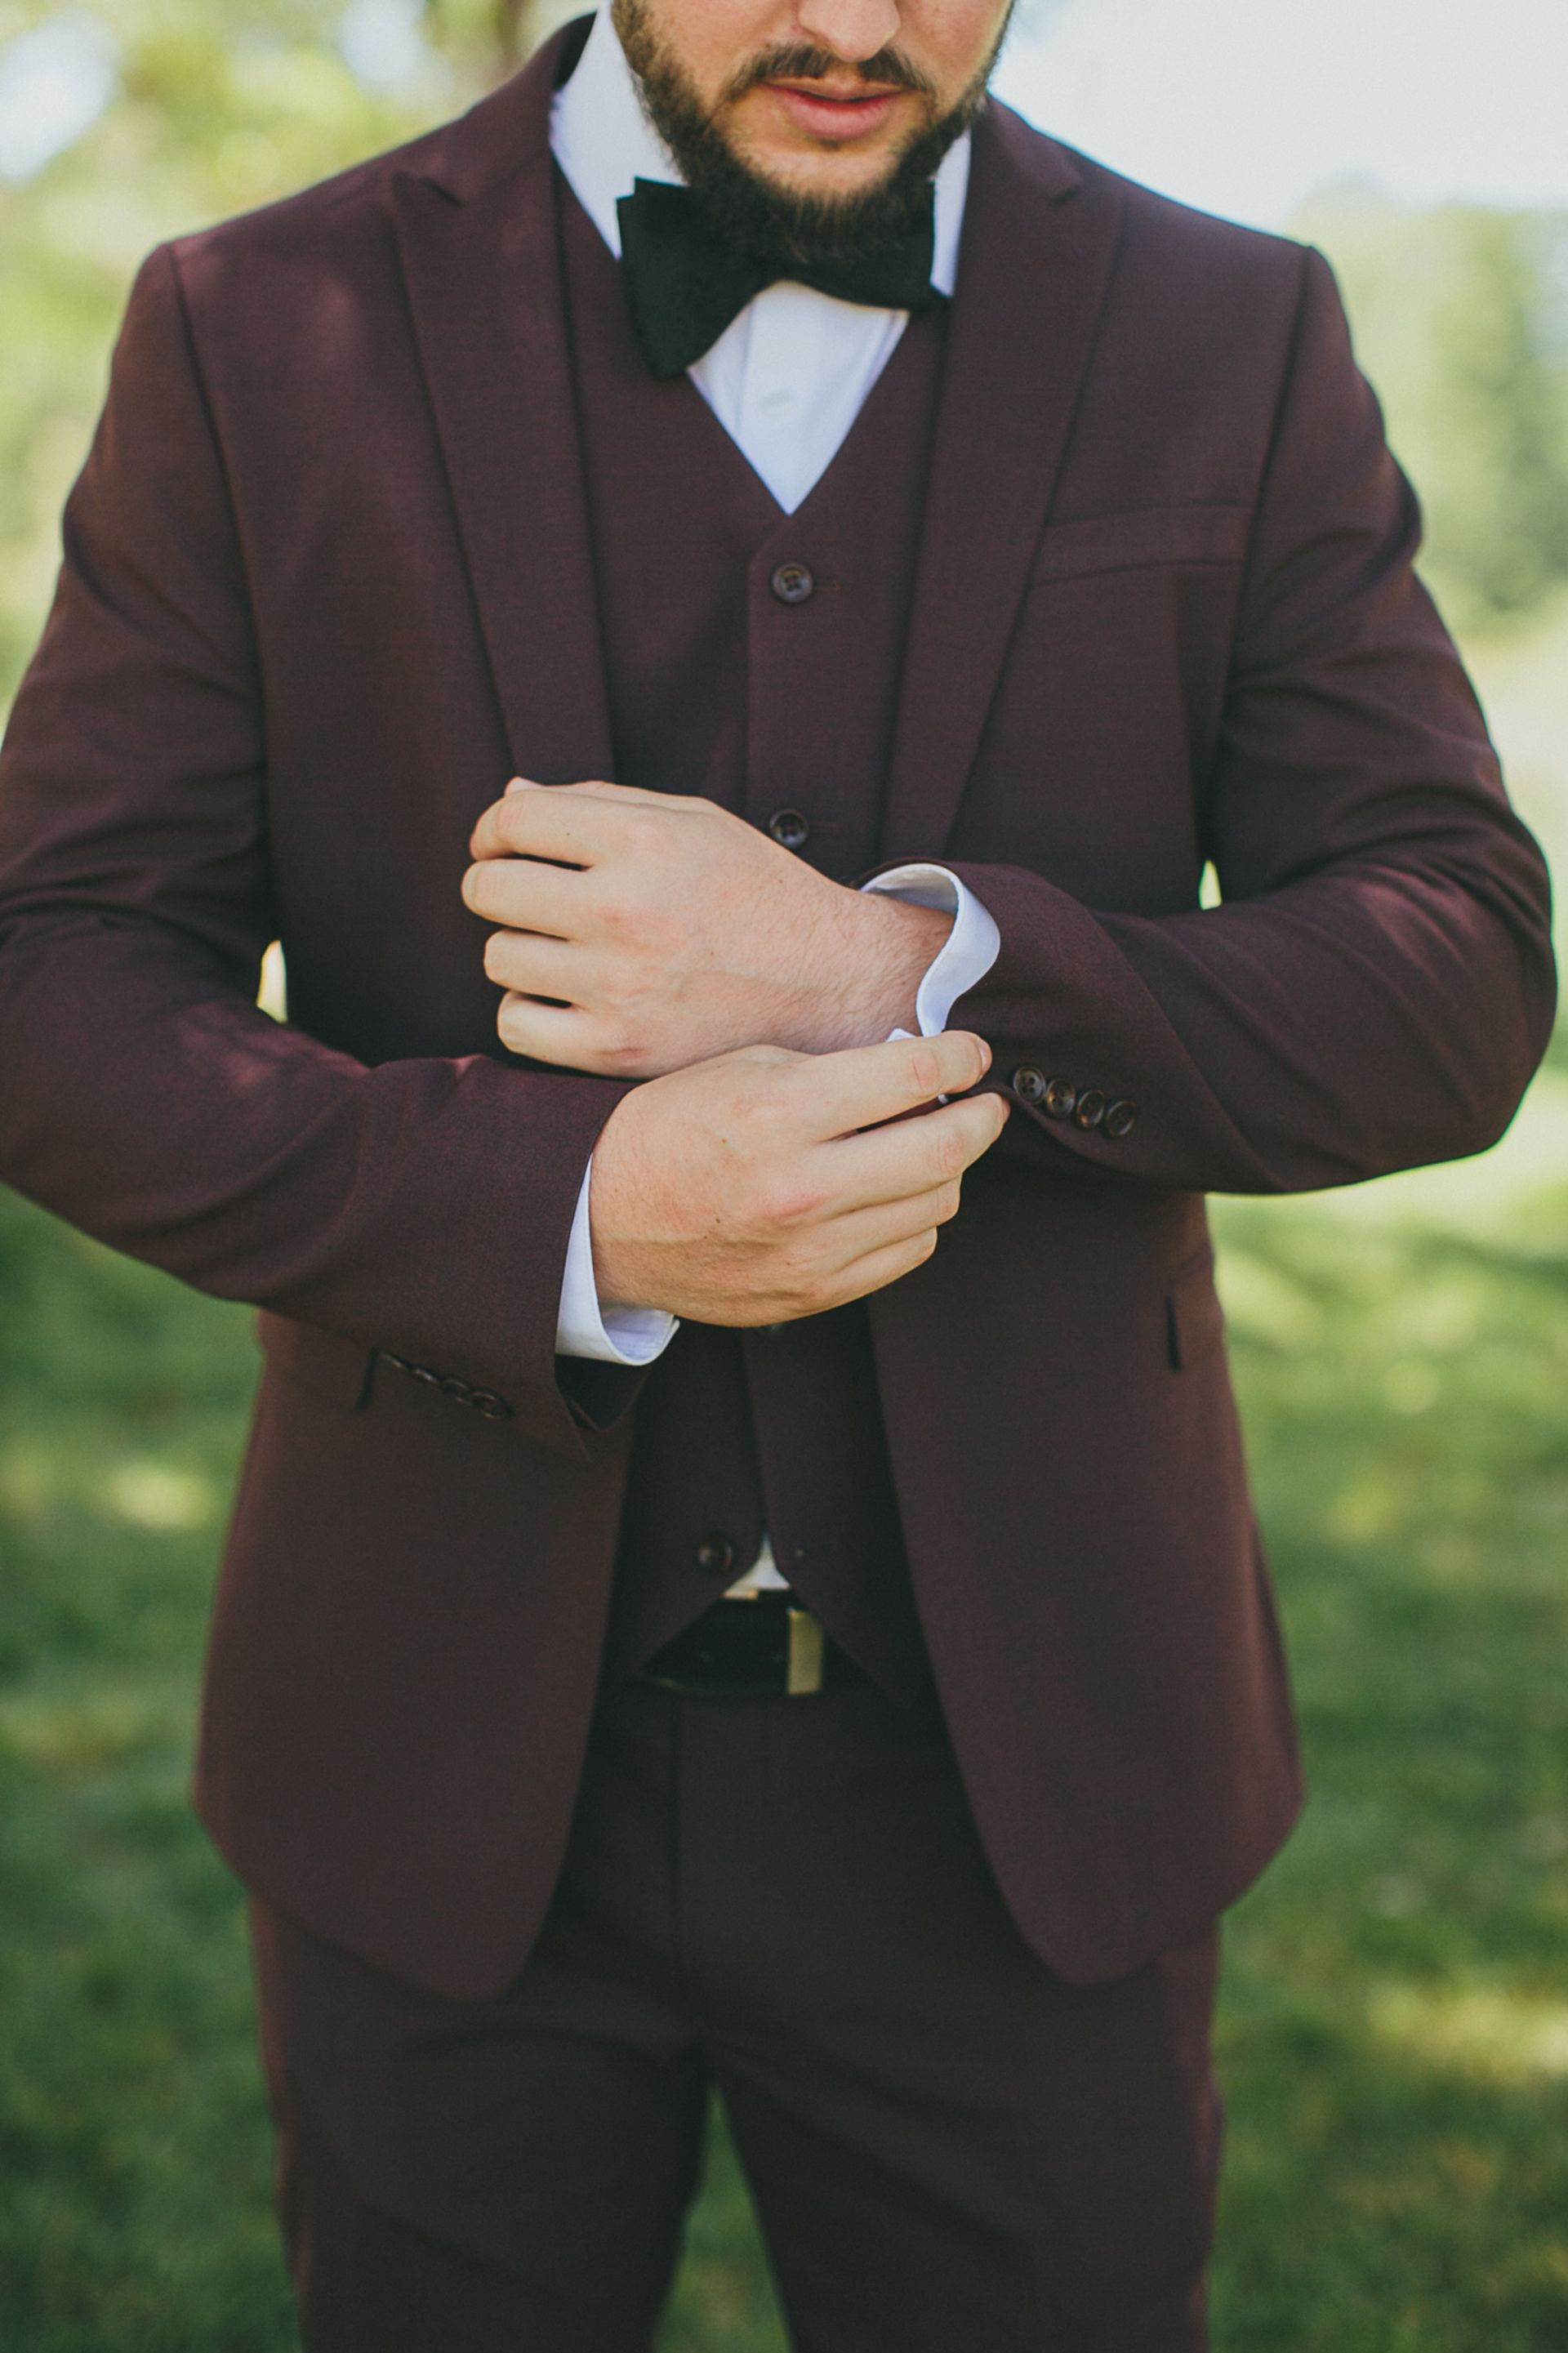 The Smarter Way to Wed | Maroon suit, Groom attire and Groomsmen suits